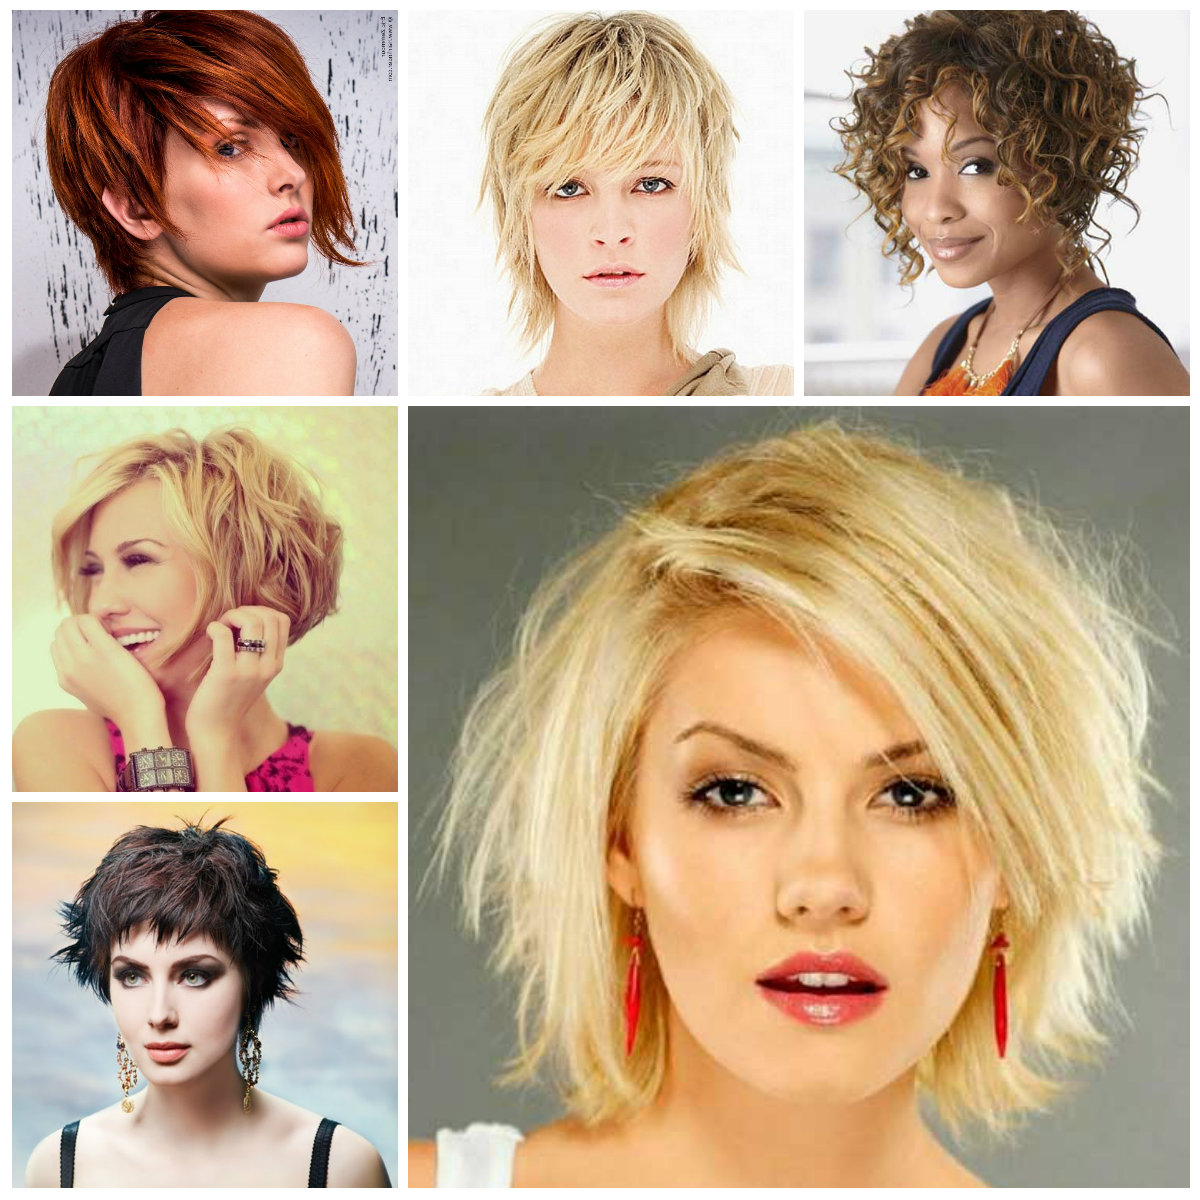 Hairstyles For Women 2019, Haircuts For Long Short And Medium Hair Inside Messy Short Haircuts For Women (View 17 of 25)